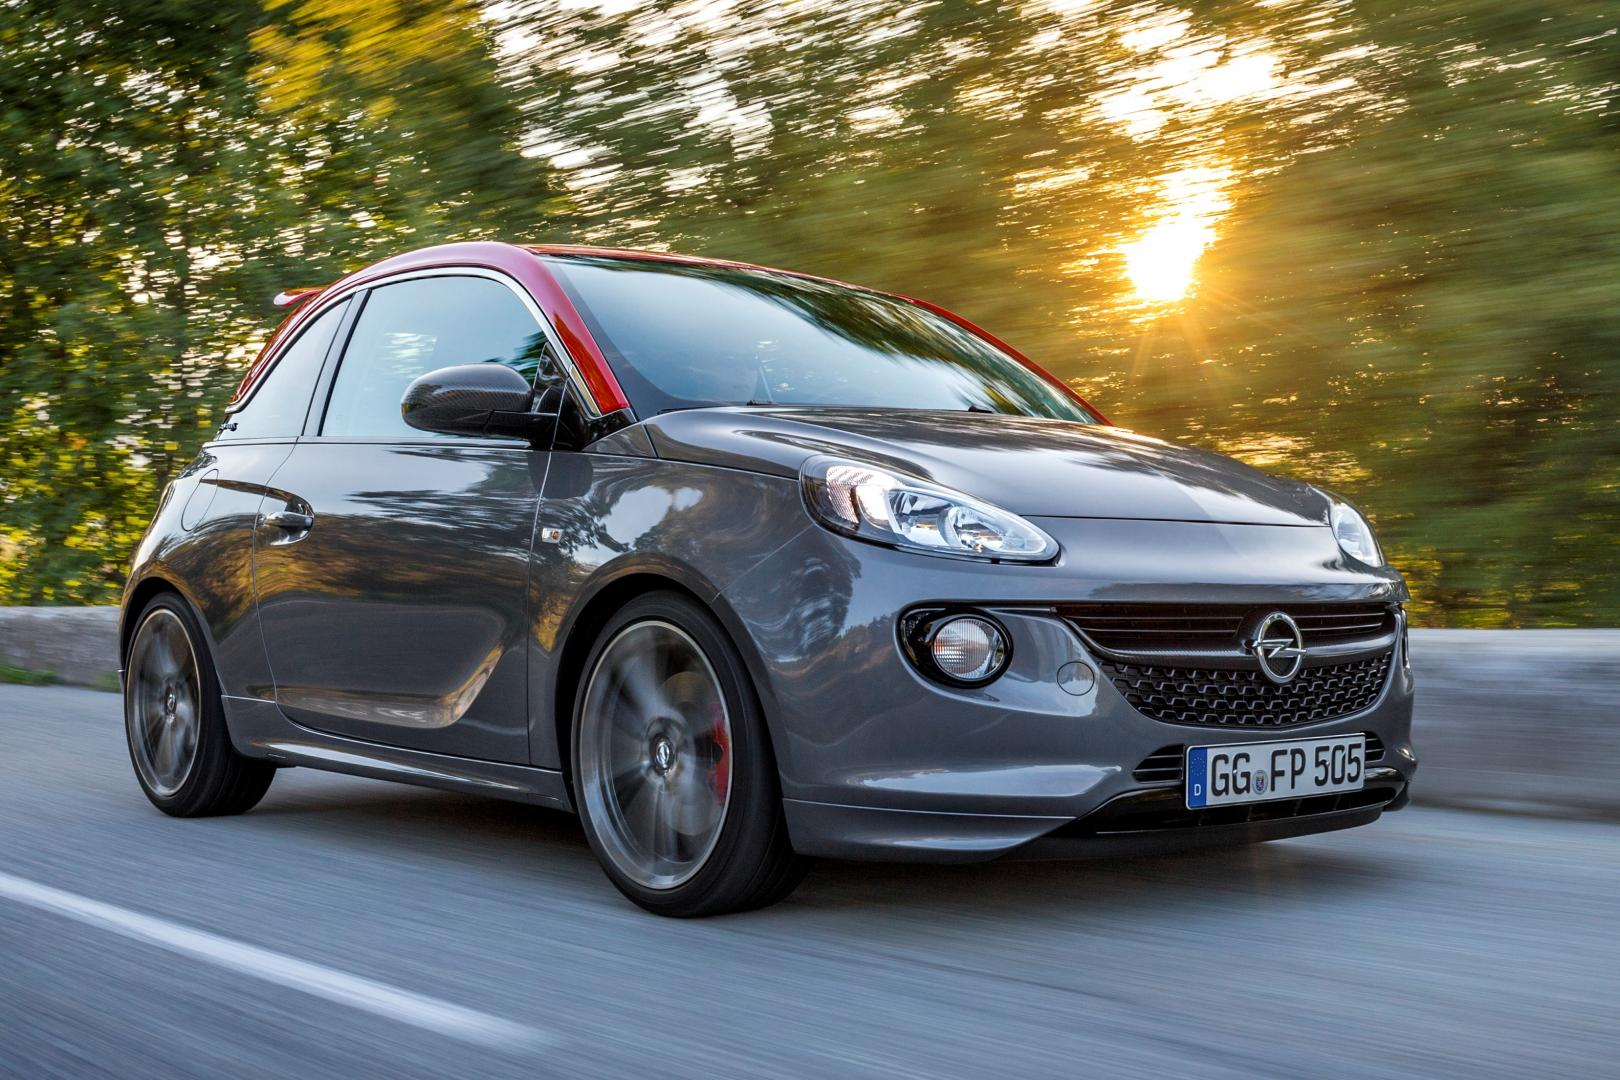 Opel Adam S 1.4 Turbo (2015)